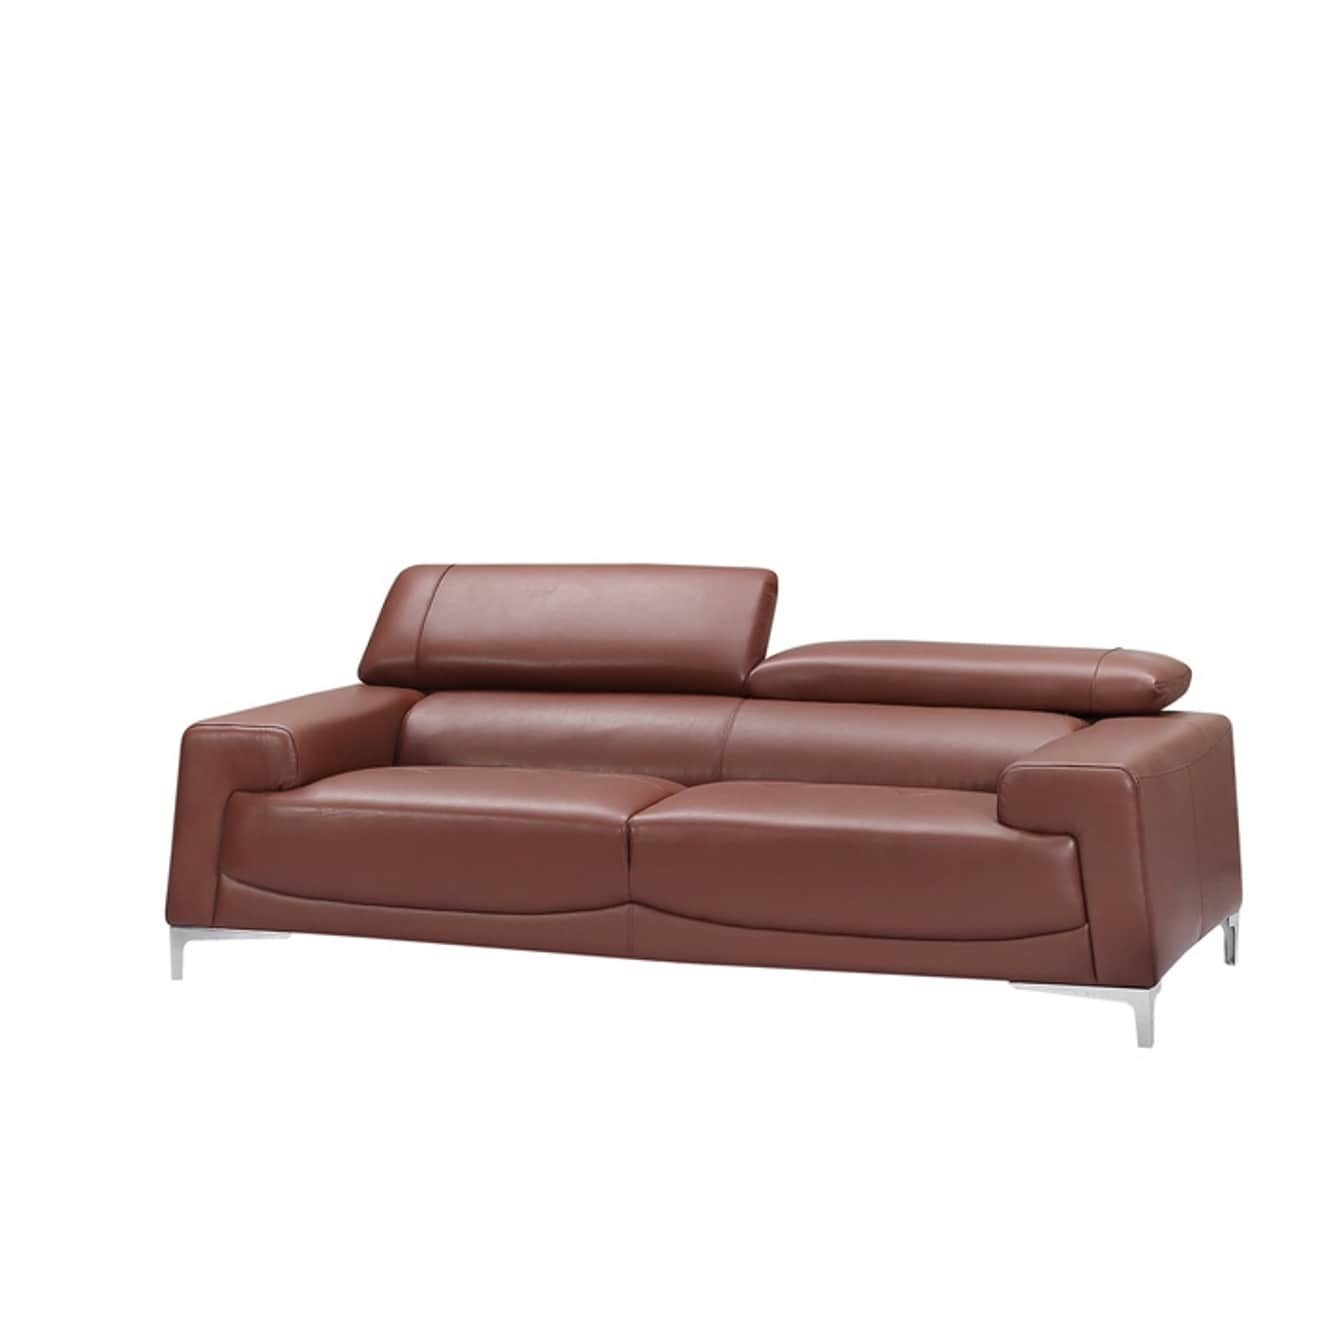 Shop Luca Home Modern Saddle Brown Sofa - Free Shipping Today ...